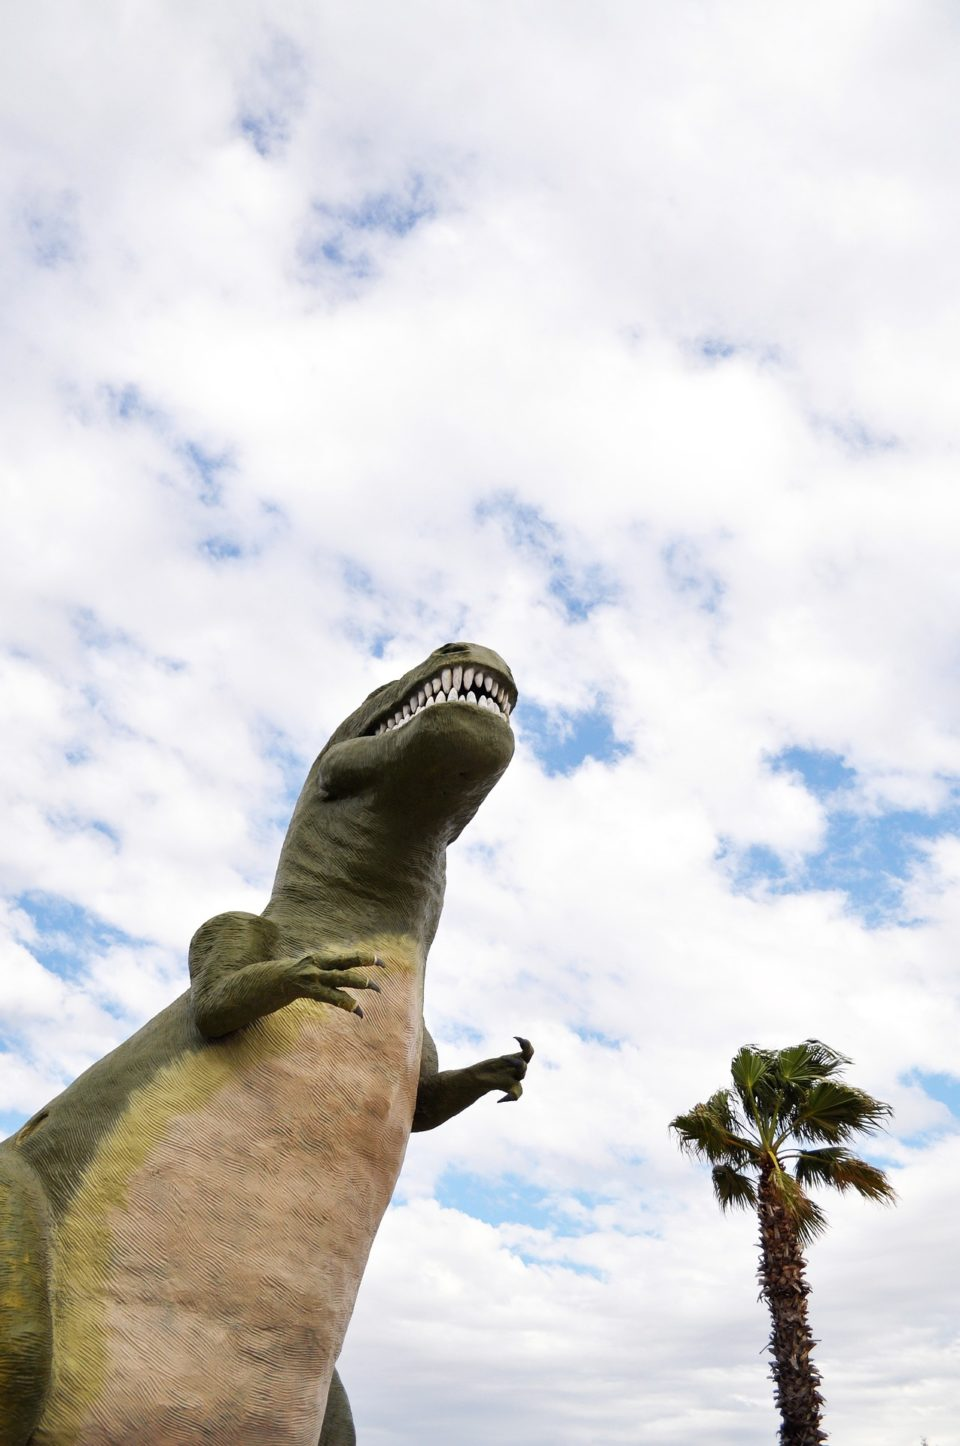 Giant trex statue hovering over a palm tree in blue sky